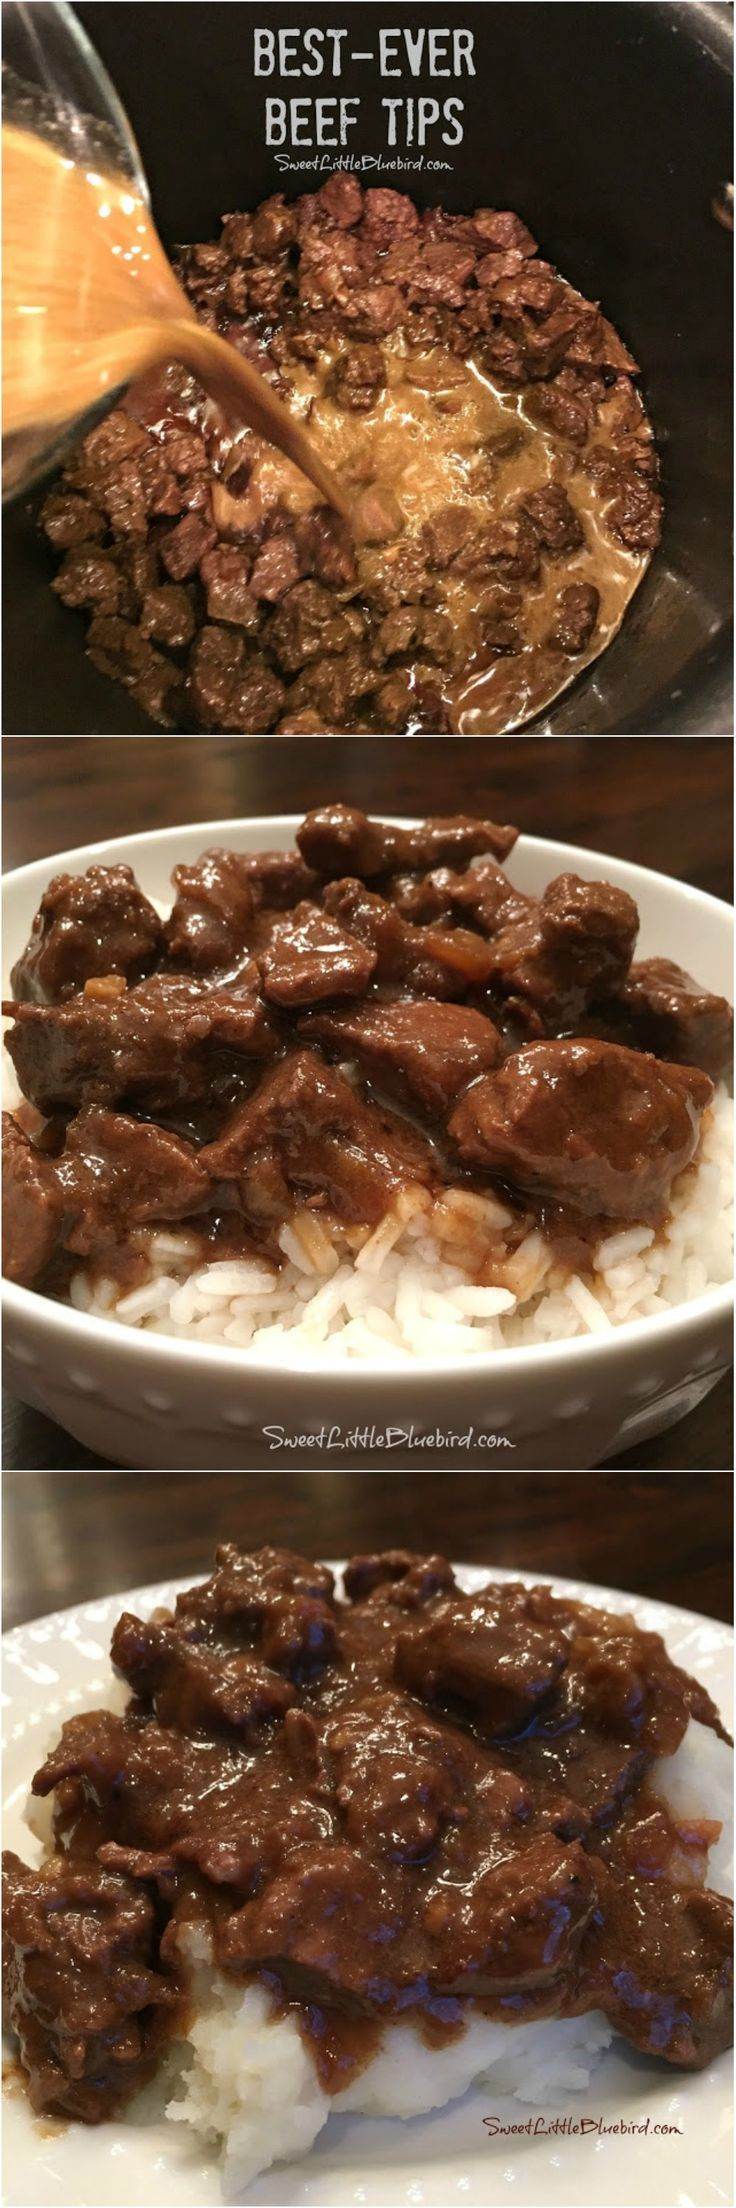 Best-Ever Beef Tips Today's tried and true is a recipe that's been a family favorite for over a decade - Best-Ever Beef Tips! BEST-EVER BEEF TIPS Tender beef cooked in a deliciously rich gravy, served over rice, mashed potatoes #mashedpotatoesrecipe